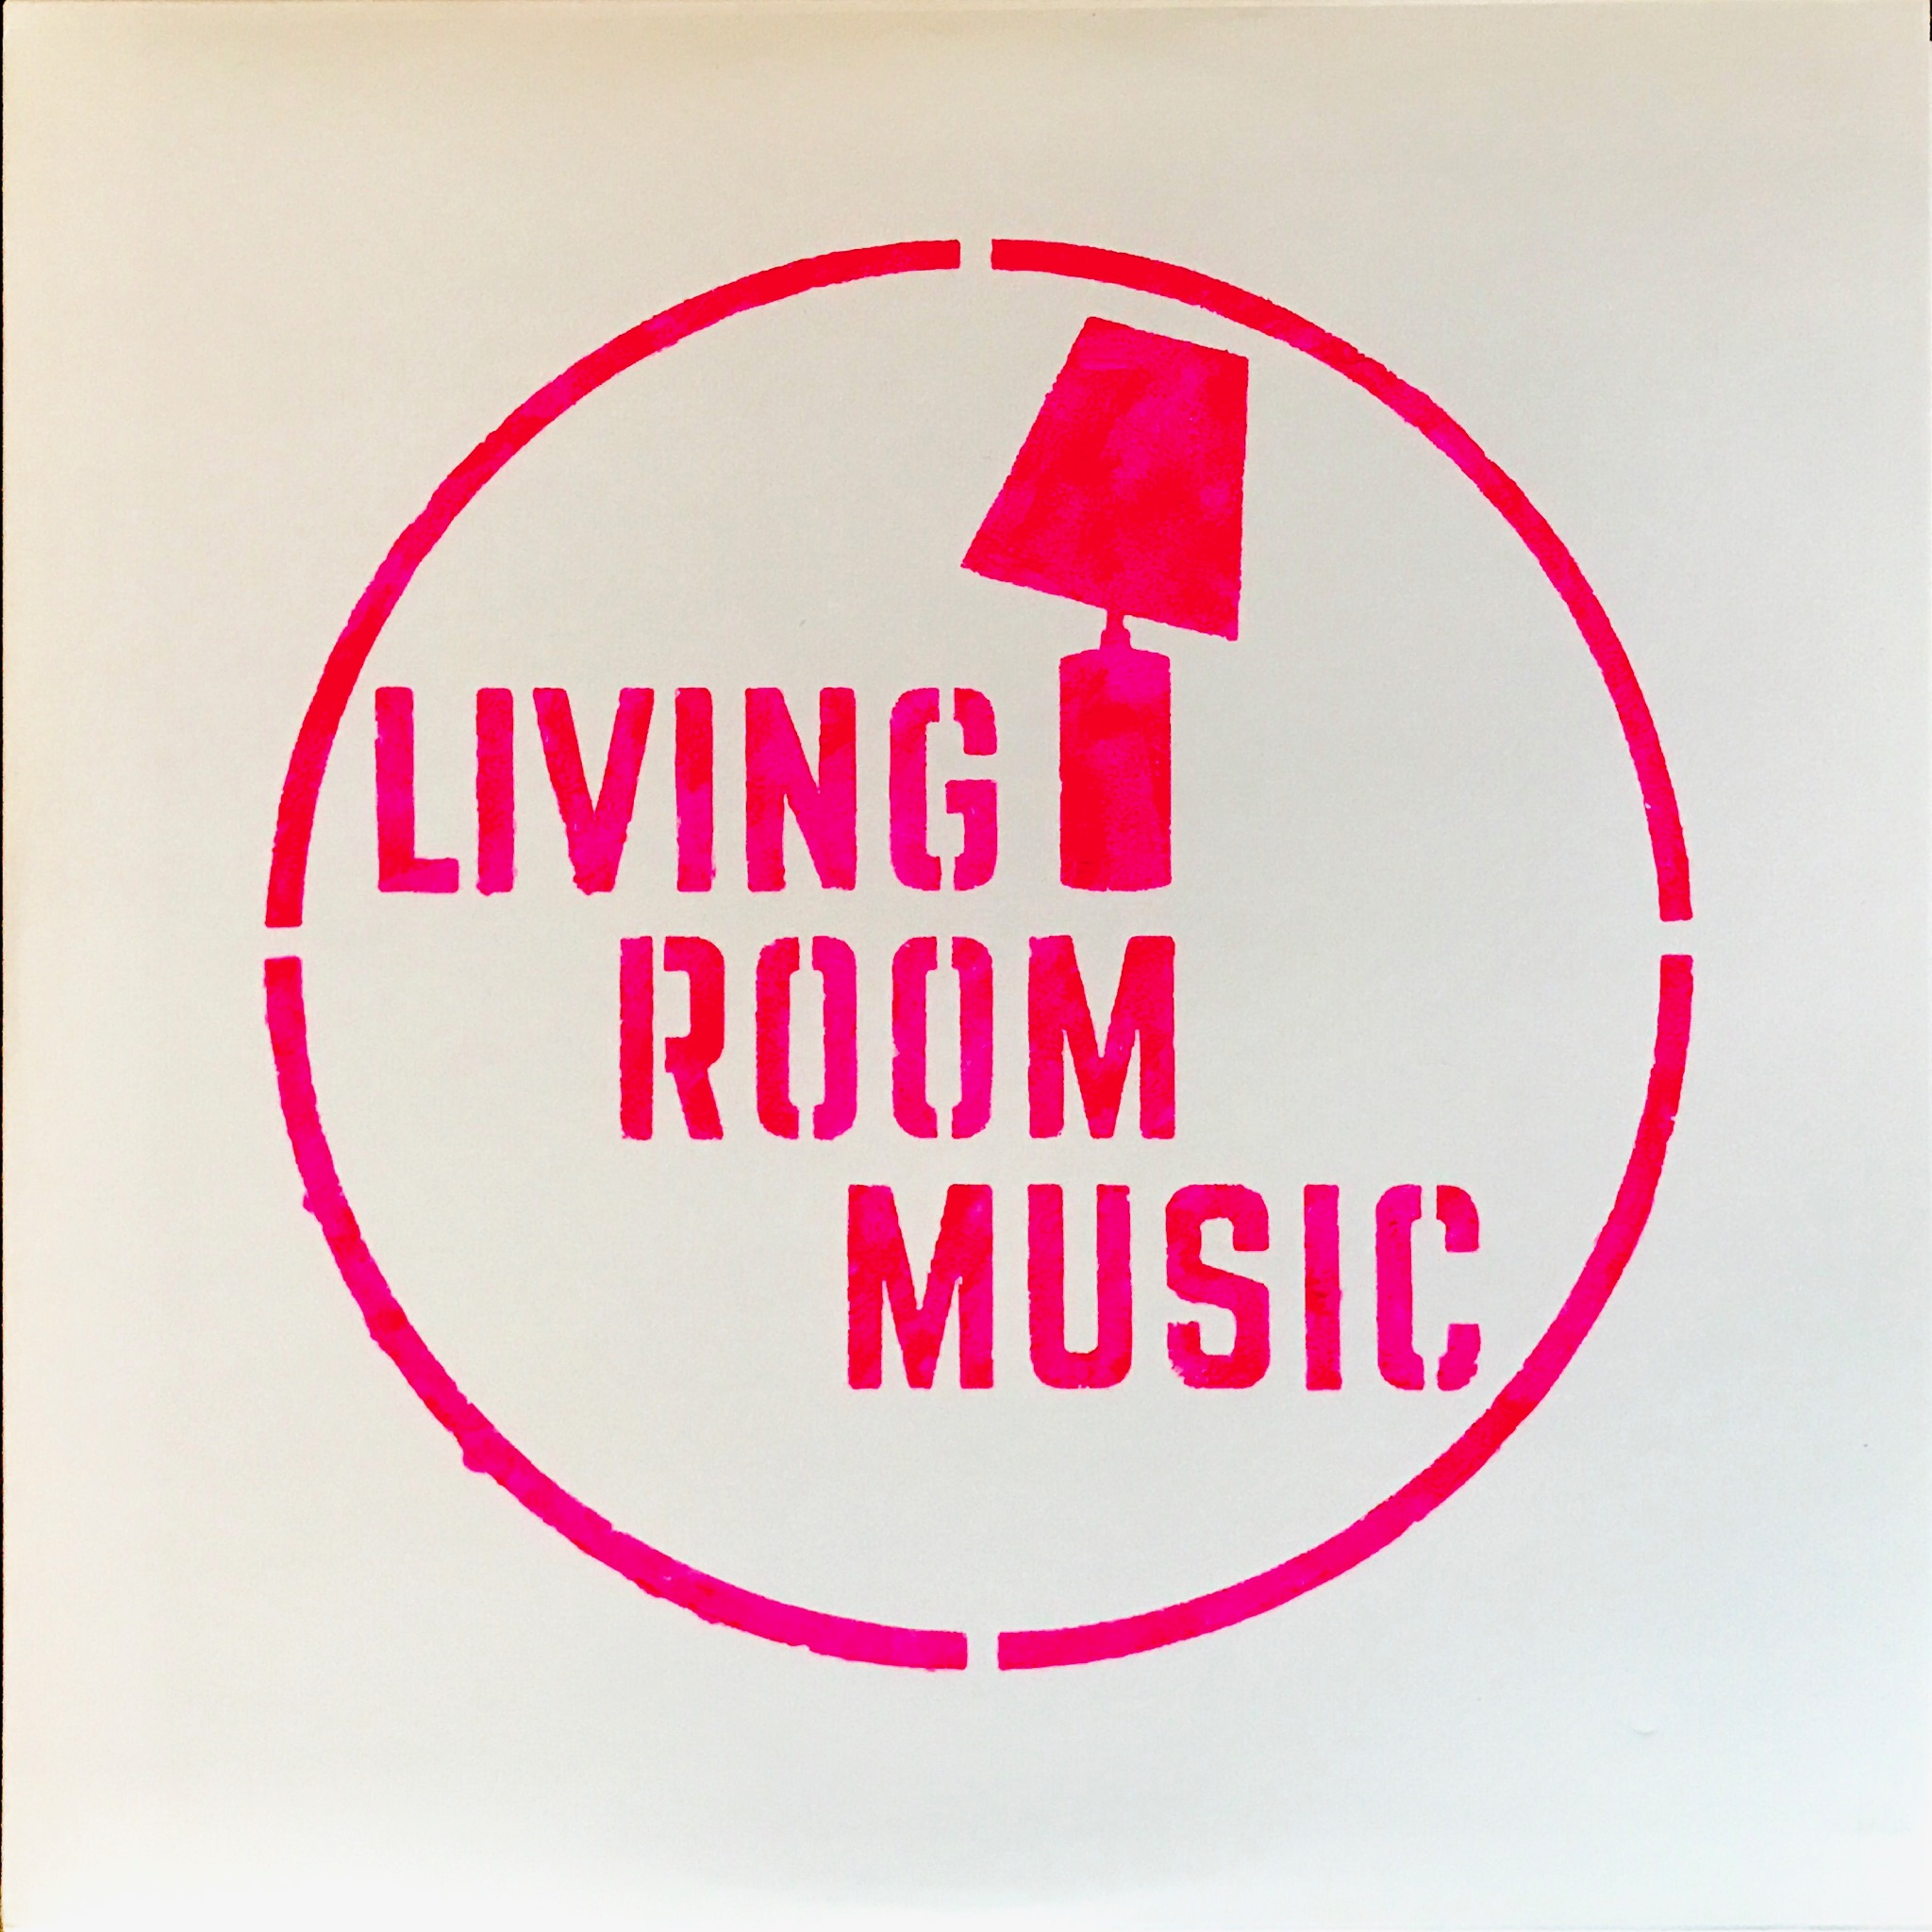 Living Room Music. Volume 1. Music by Robert Honstein, Dave Molk, Wally Gunn, Andrea Mazzariello, and Elliot Cole. One More Revolution 002. for sale  here .